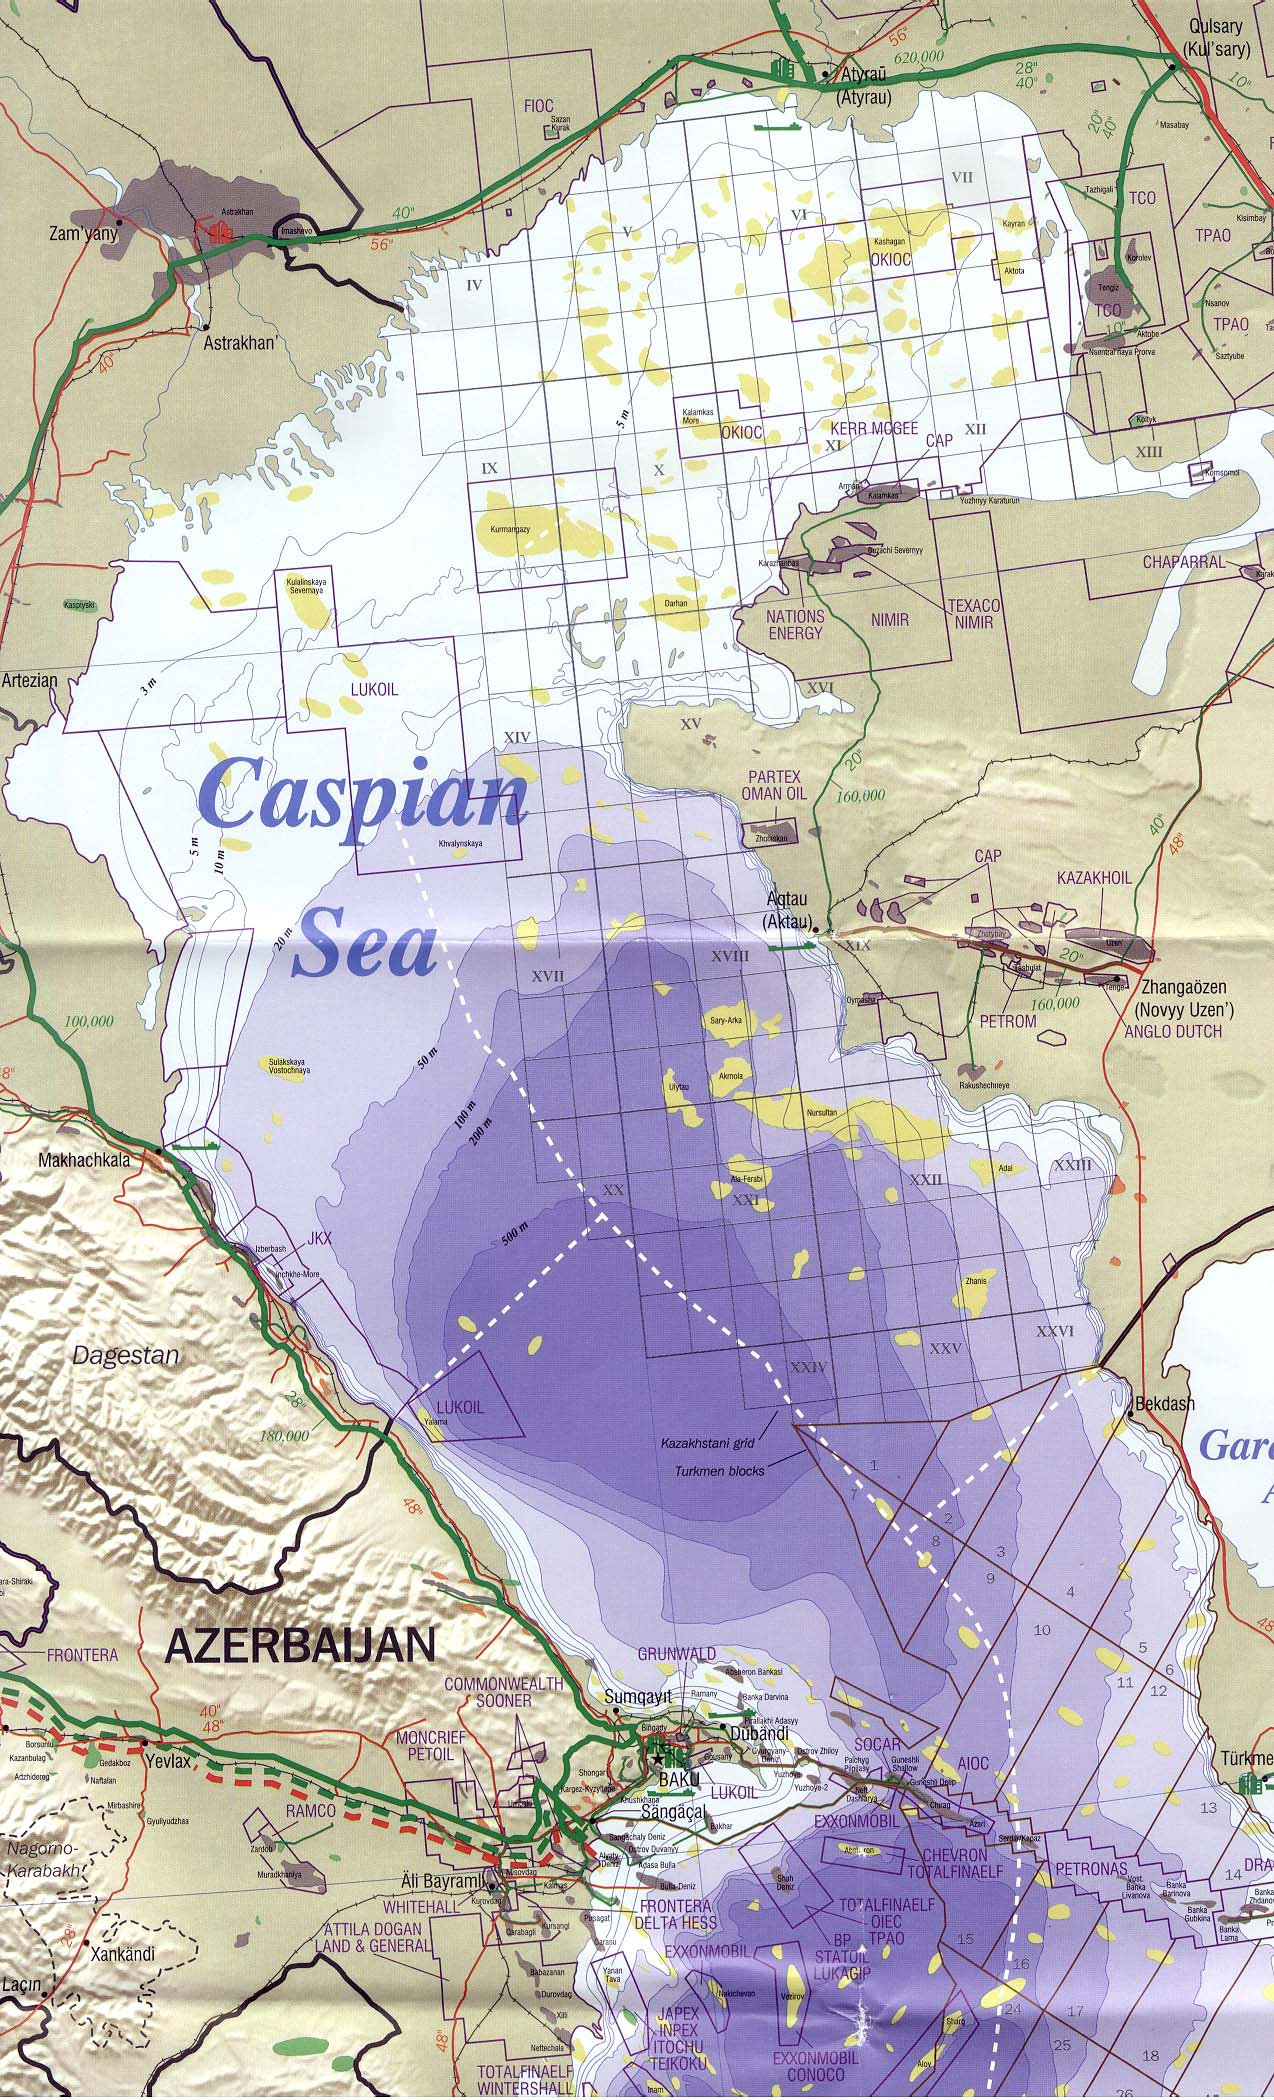 Northern Caspian Sea Region Map